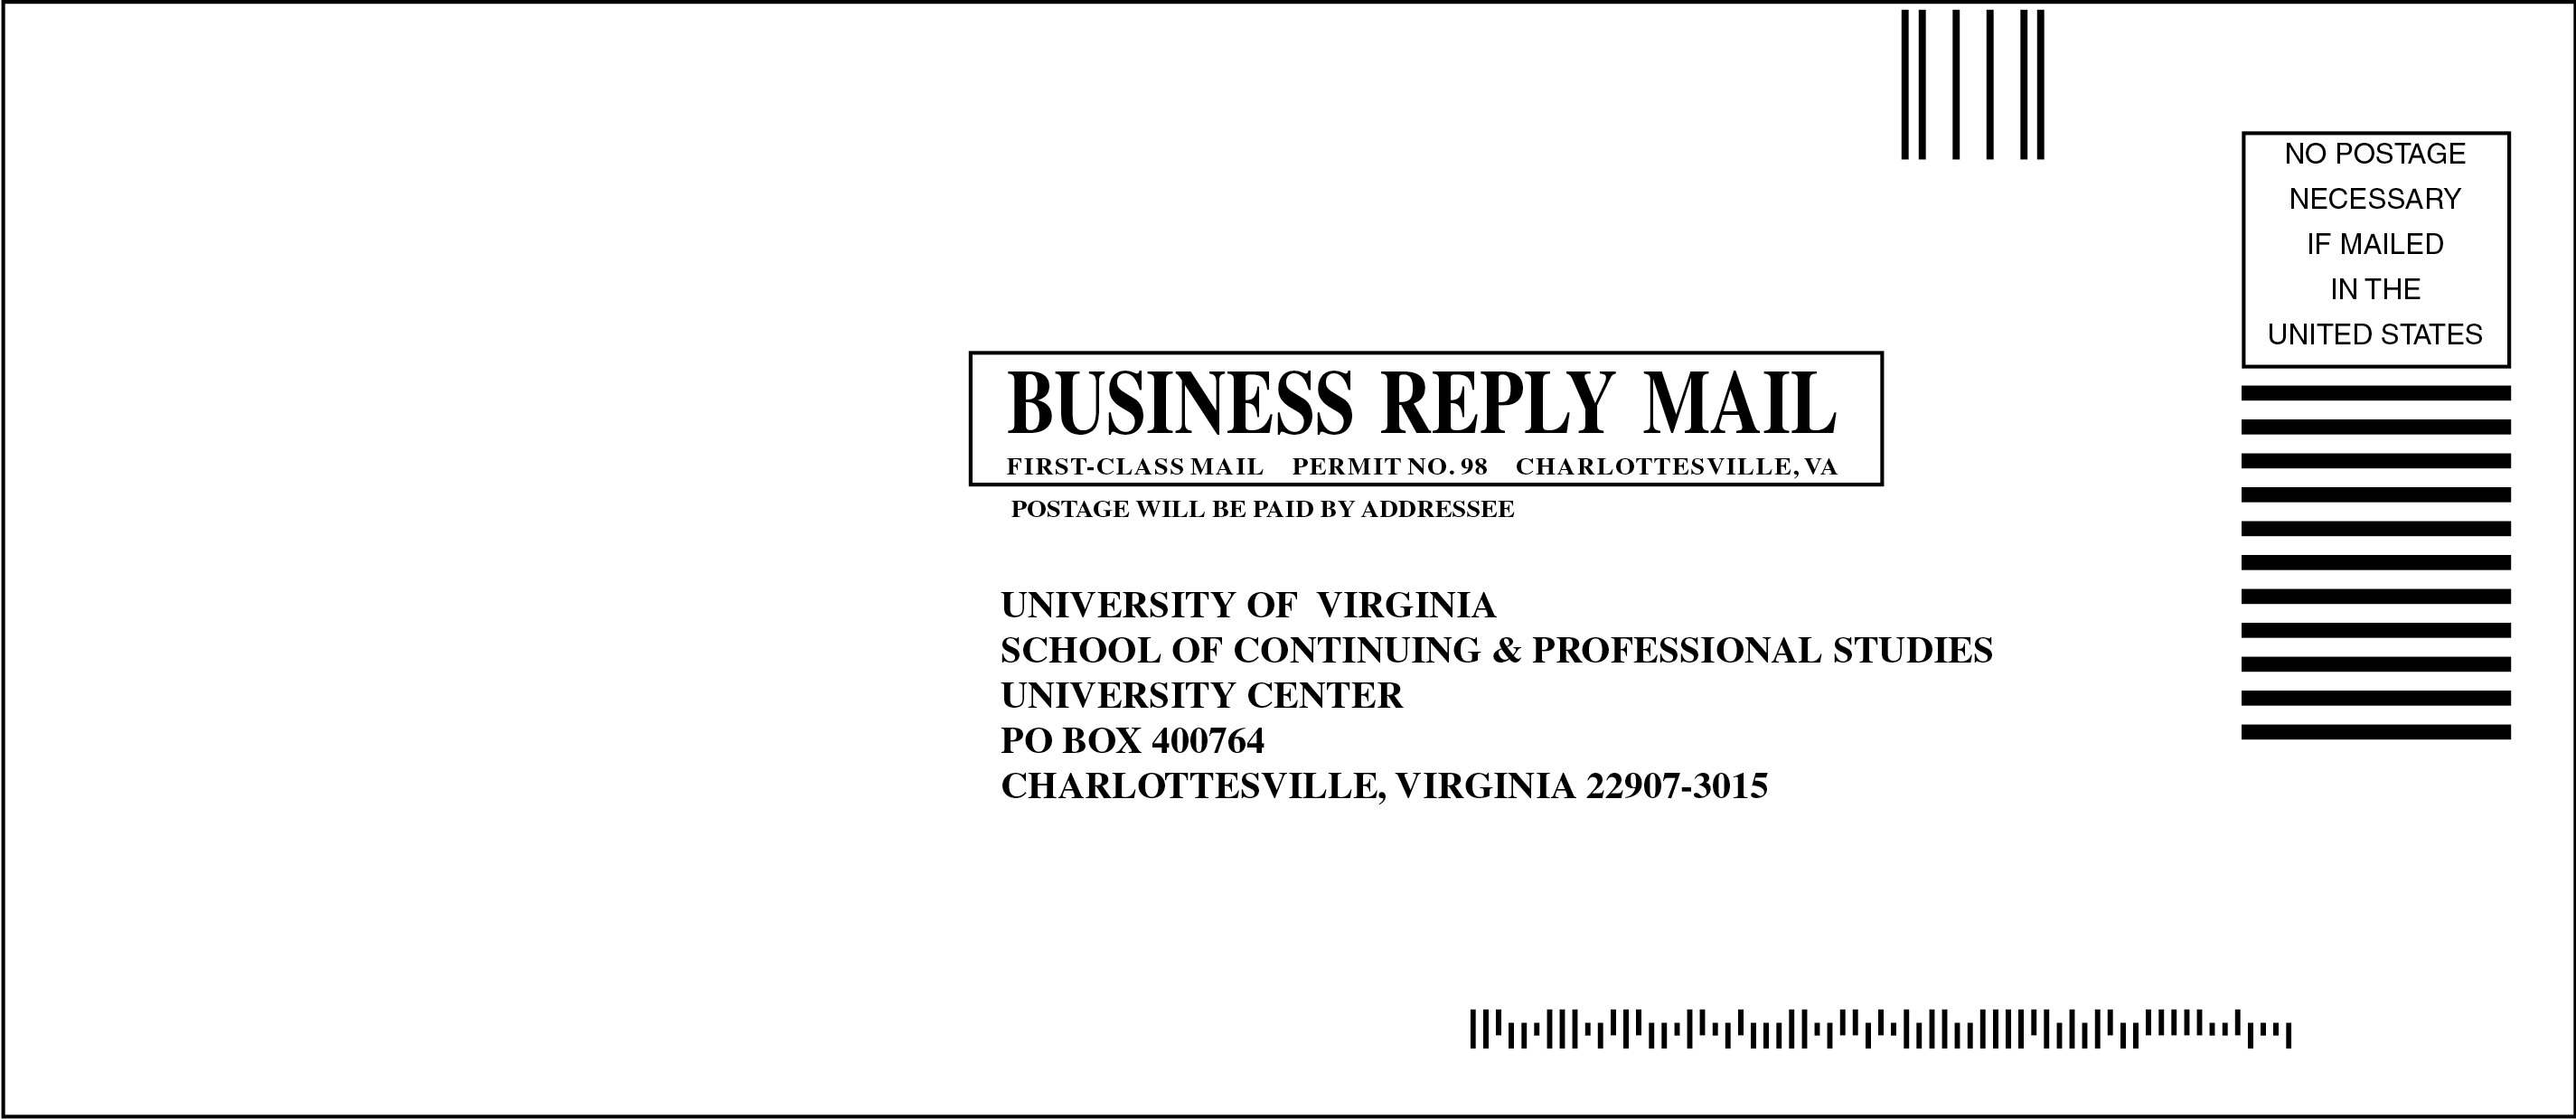 Business Letter Envelope Format | Soa World